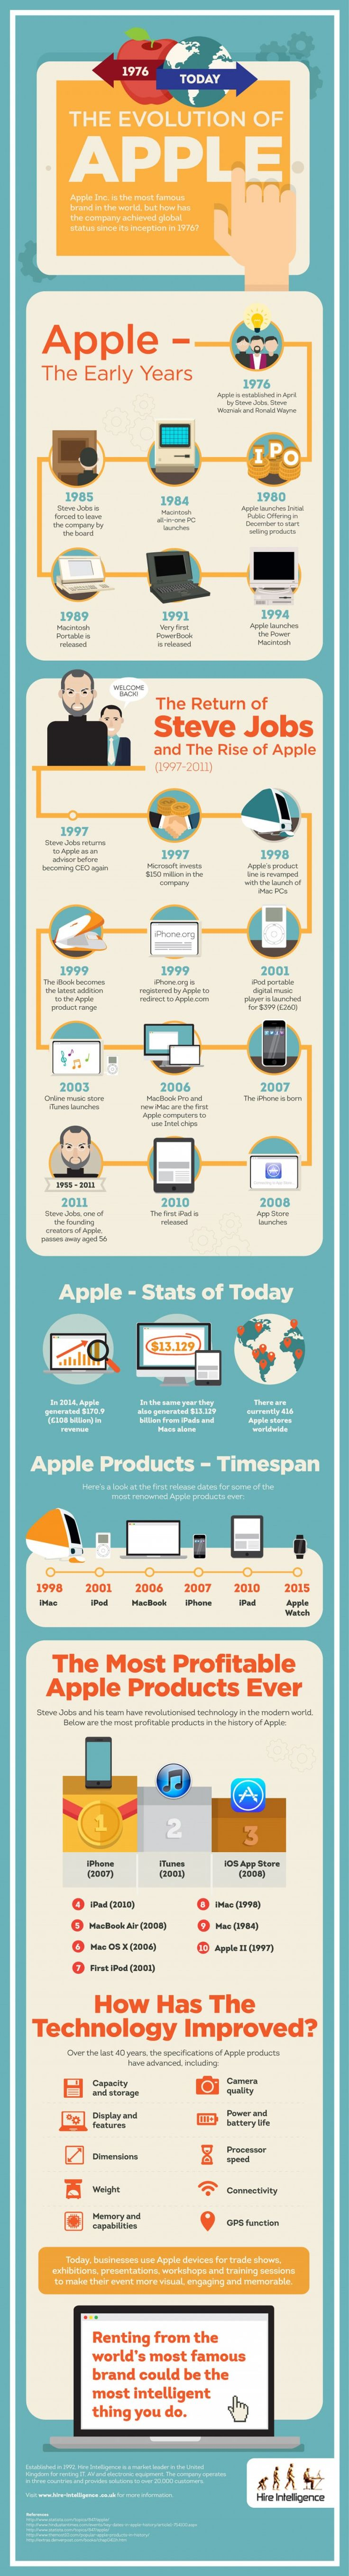 The Evolution of Apple #Infographic #Featured #Technology